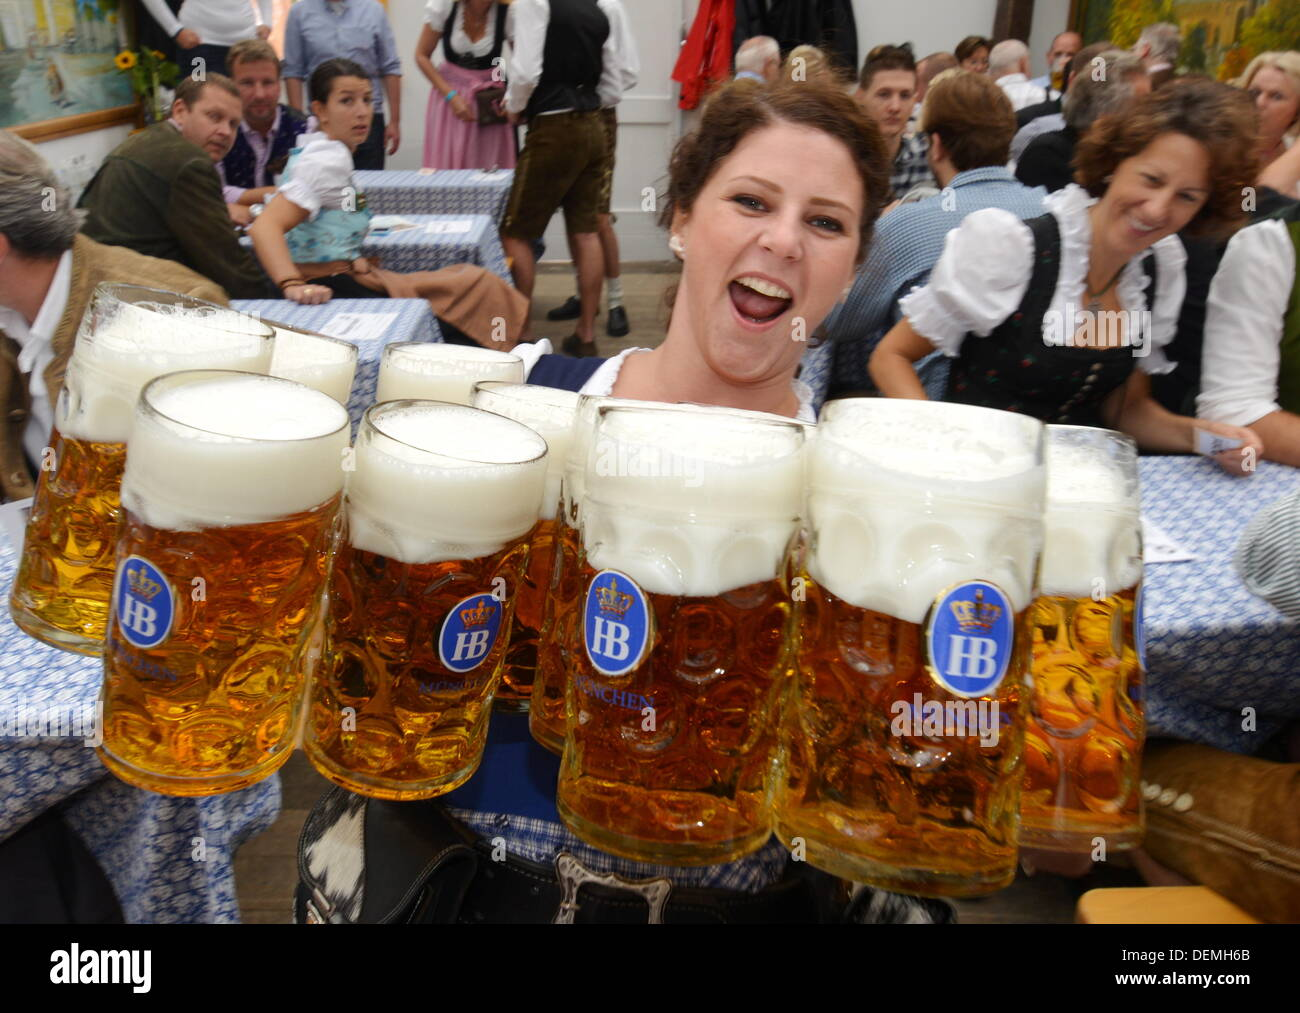 munich germany 21st sep 2013 waitresses helga carries beer jugs